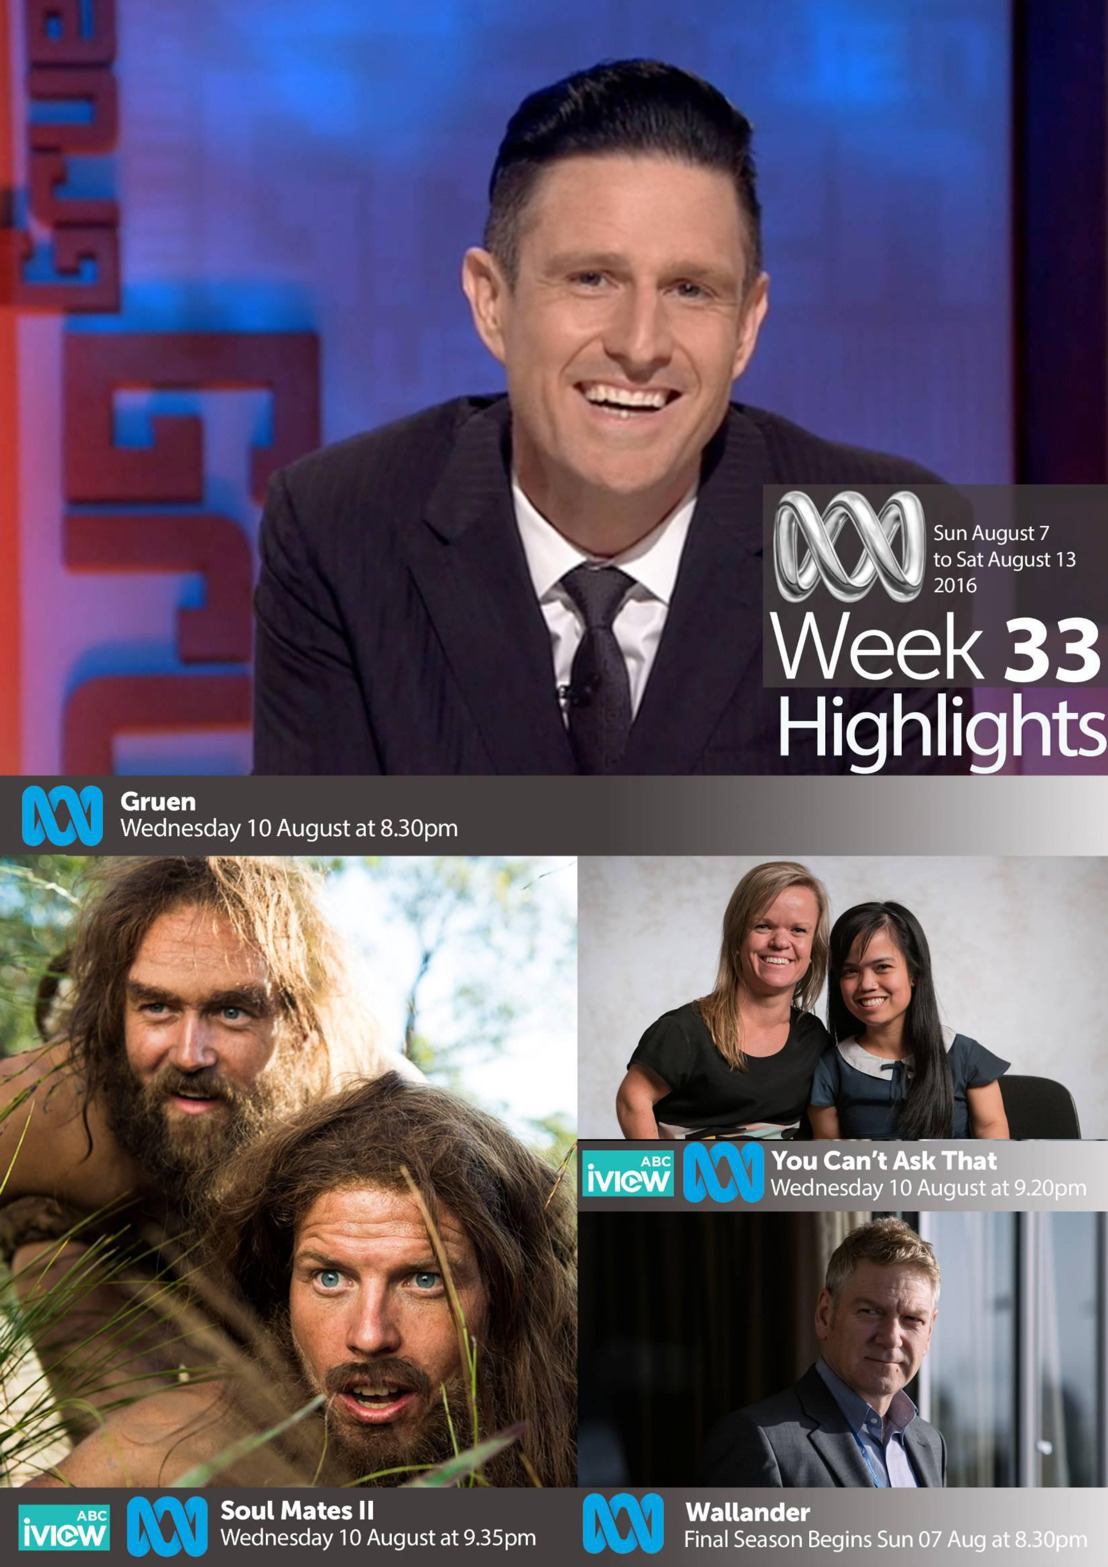 ABC Program Highlights - Week 33